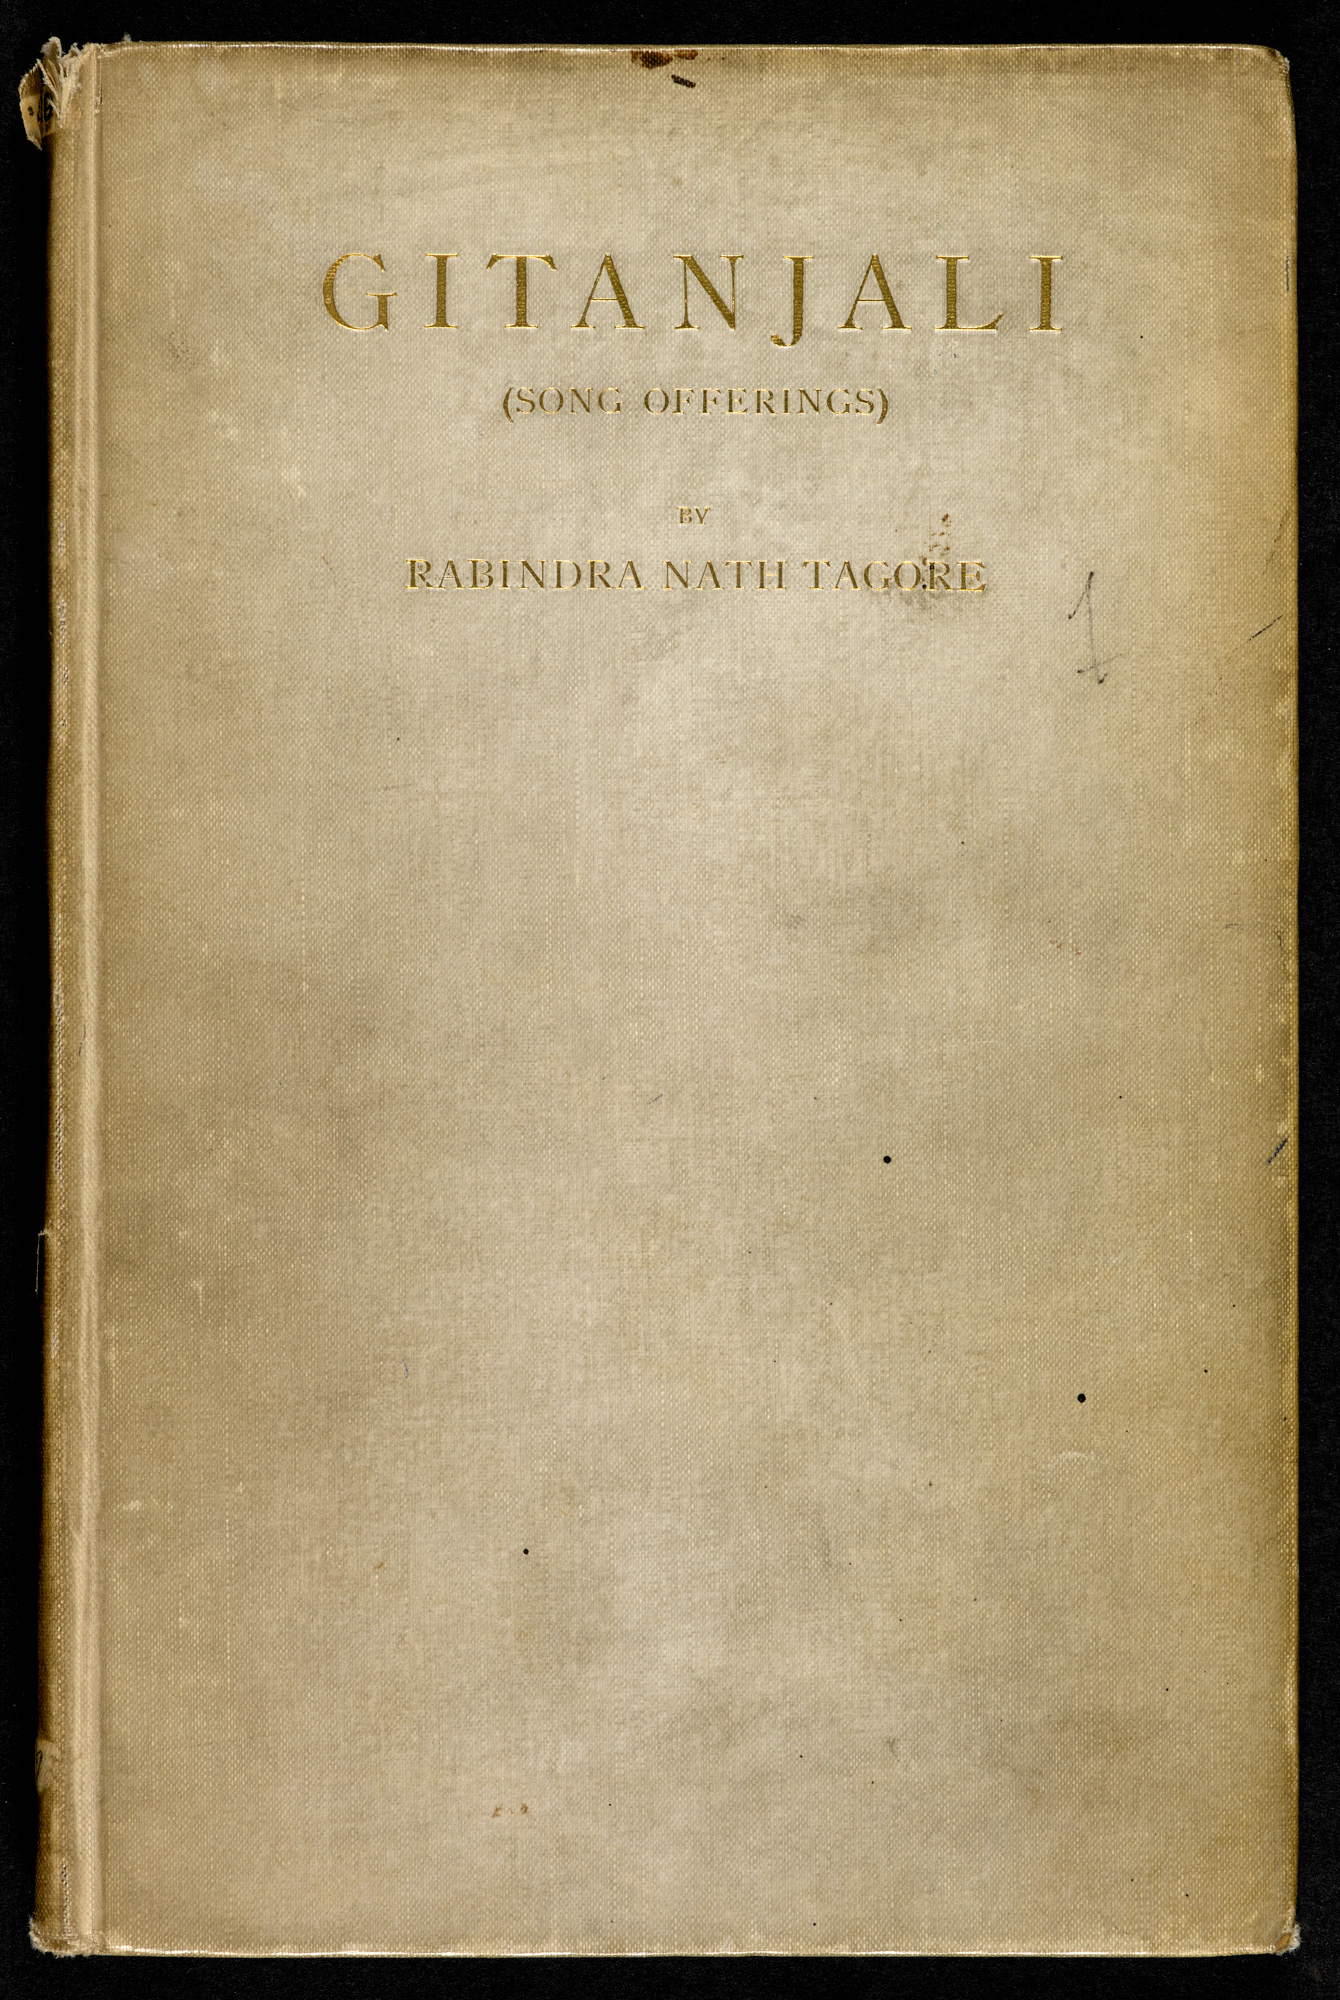 Gitanjali song-offerings, by Rabindranath Tagore